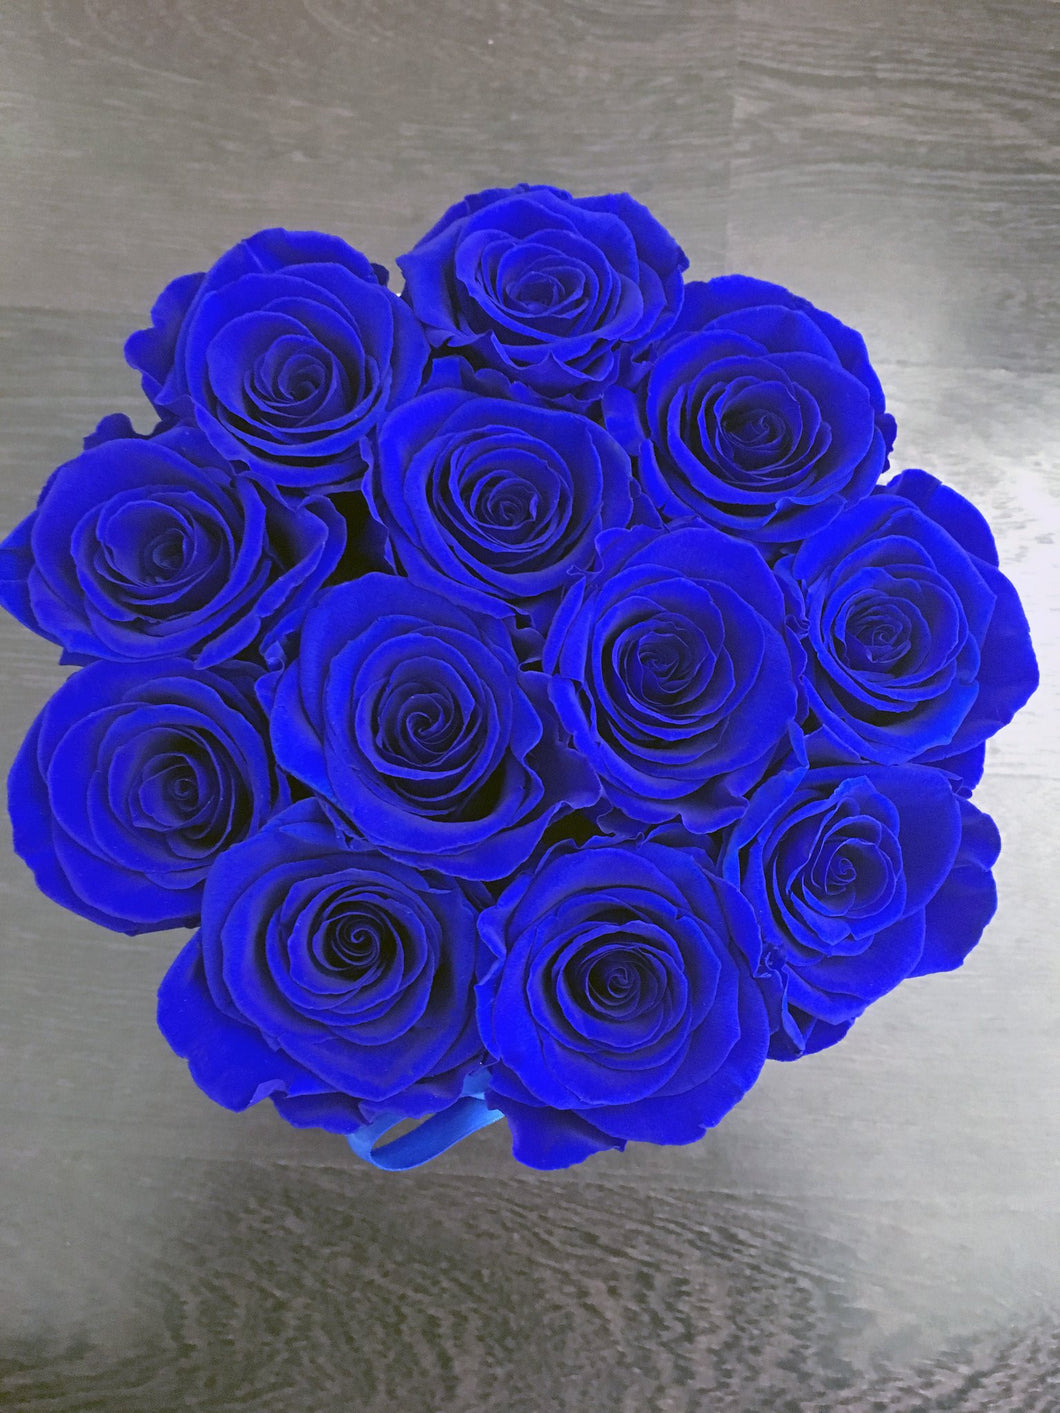 Roses That Last For 1 Year A Dozen Real Roses Free Uk Delivery